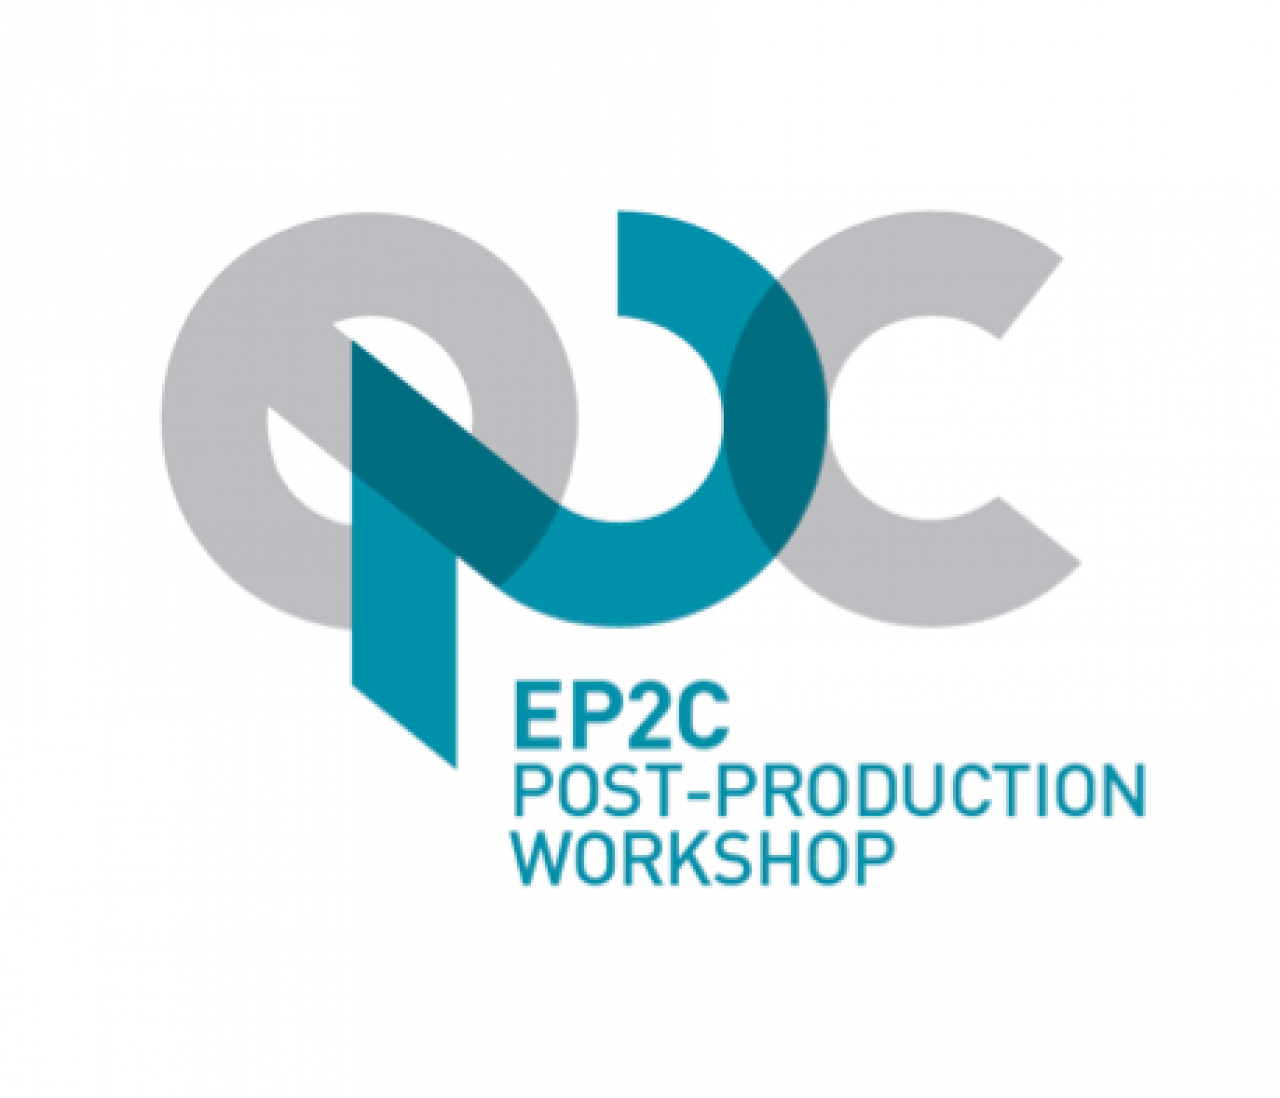 EP2C Workshop Budapesten